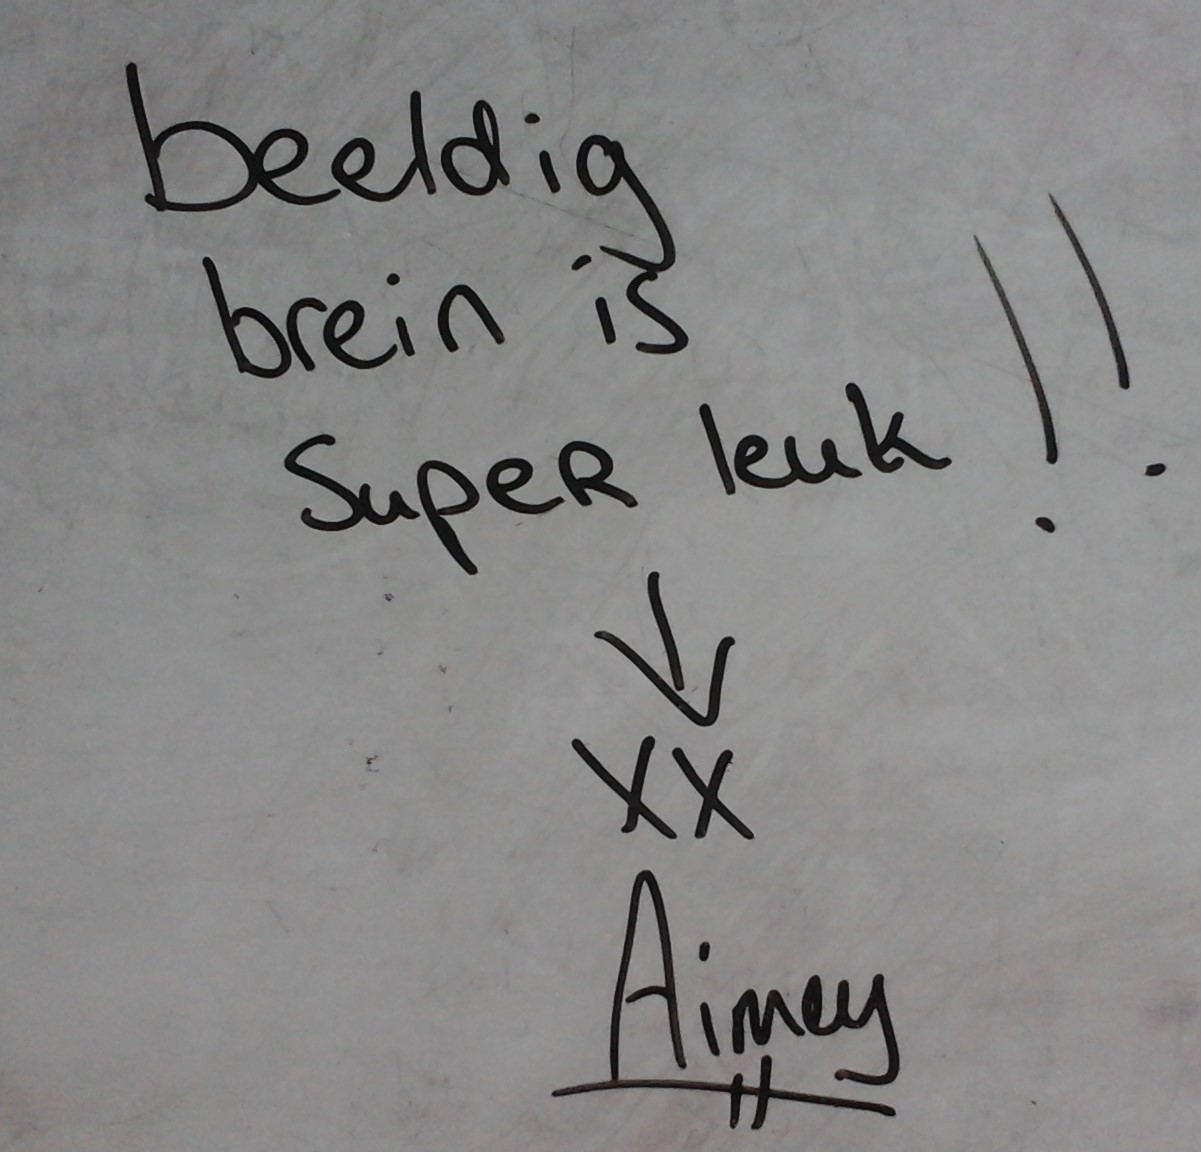 Beeldig Brein is superleuk!!